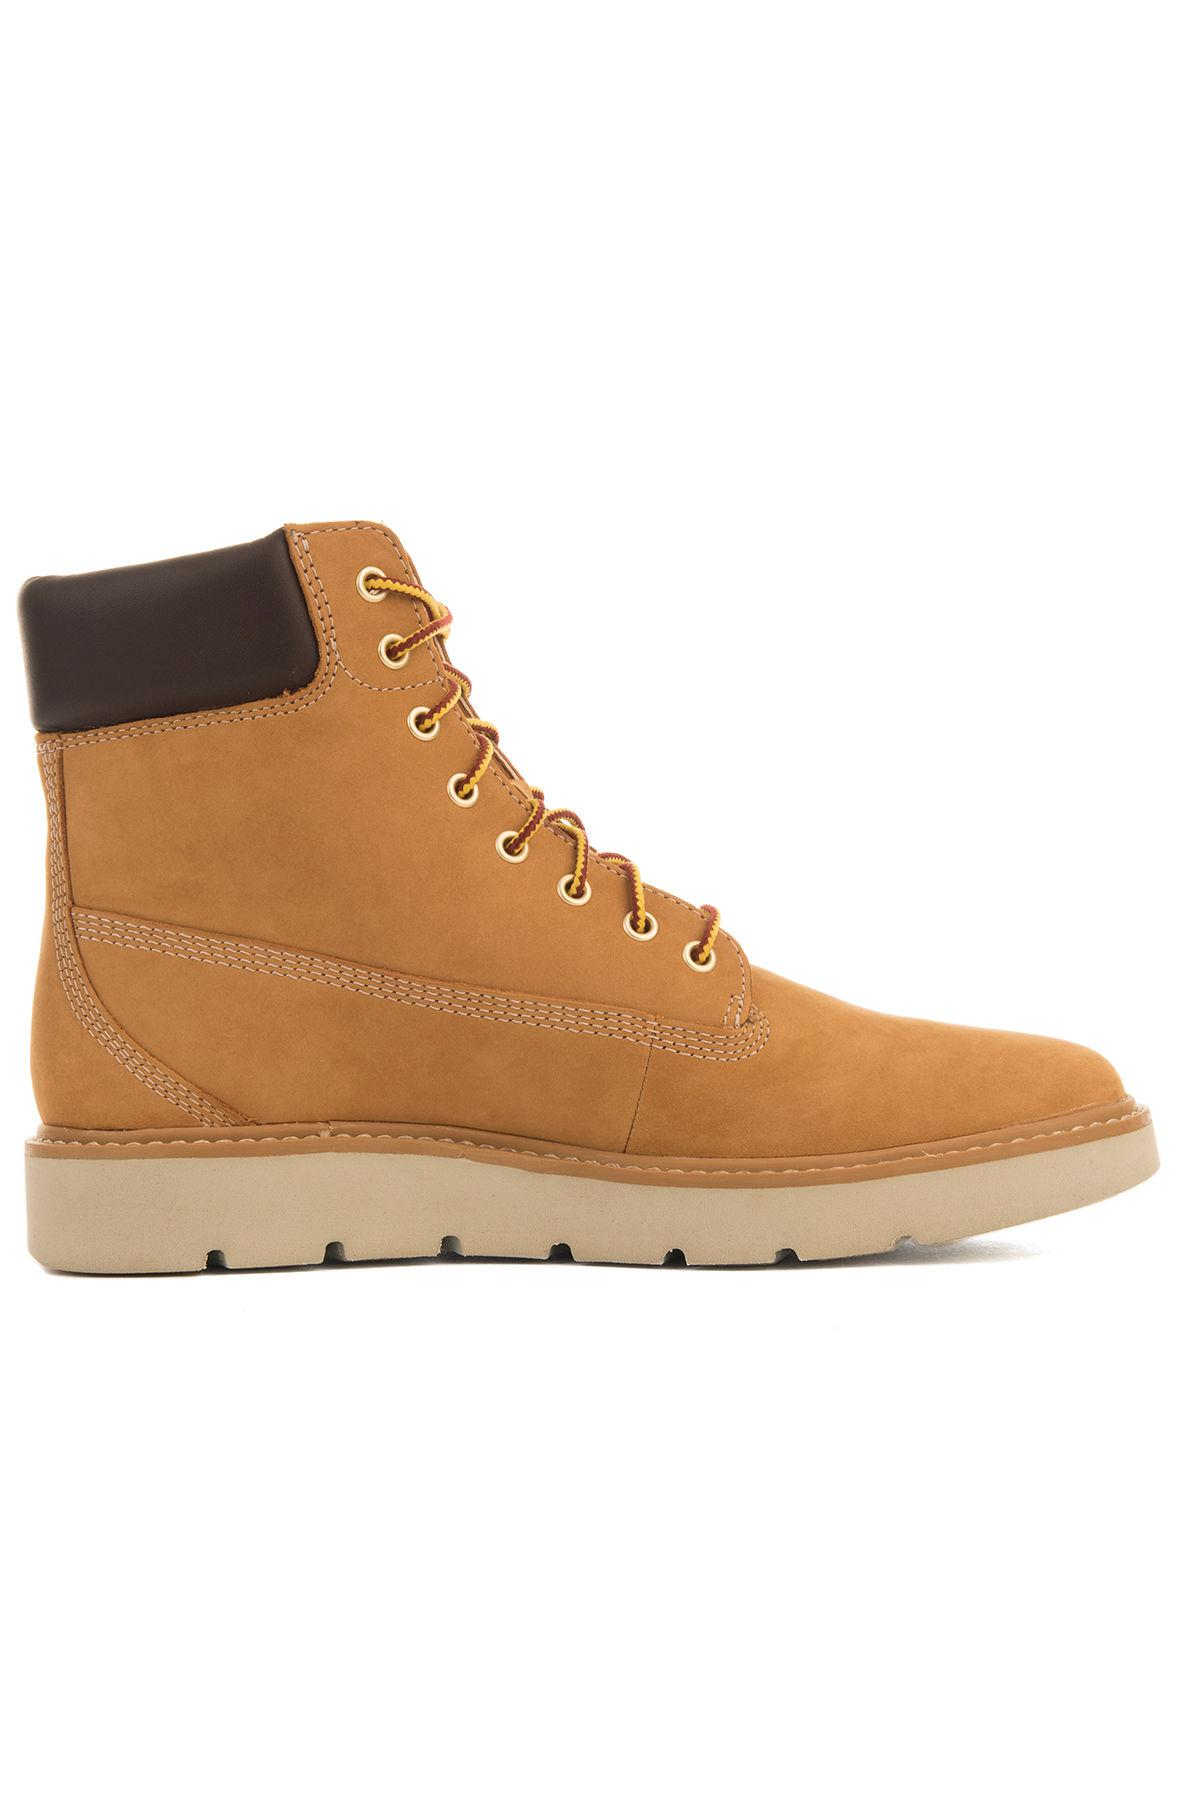 c90a8d8802c Lyst - Timberland The Kenniston 6 Boot In Wheat Nubuck in Brown for Men